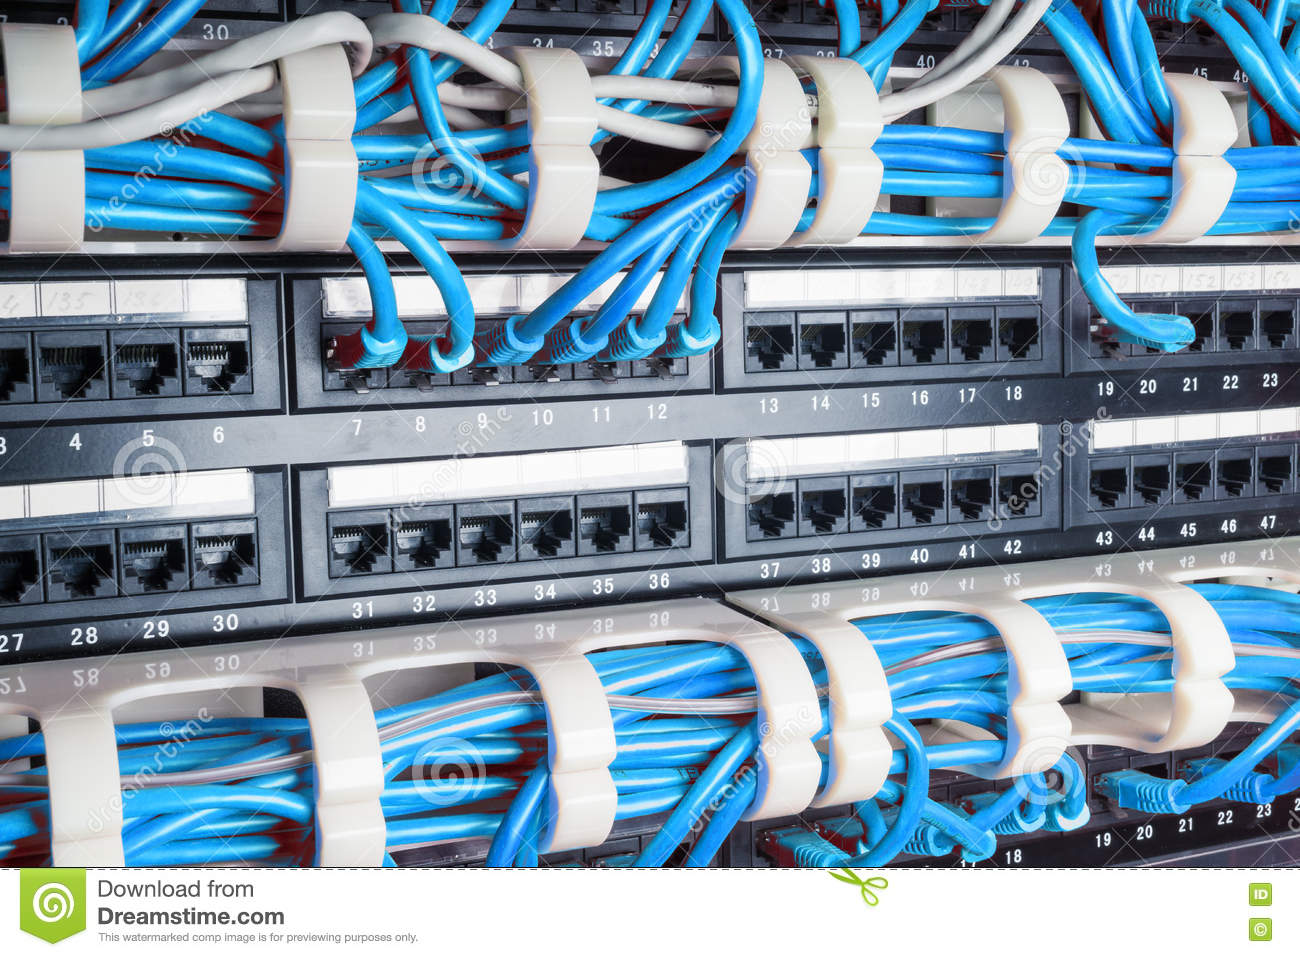 Server Rack With Blue Cables Stock Image Of Hardware Cable Internet Wiring